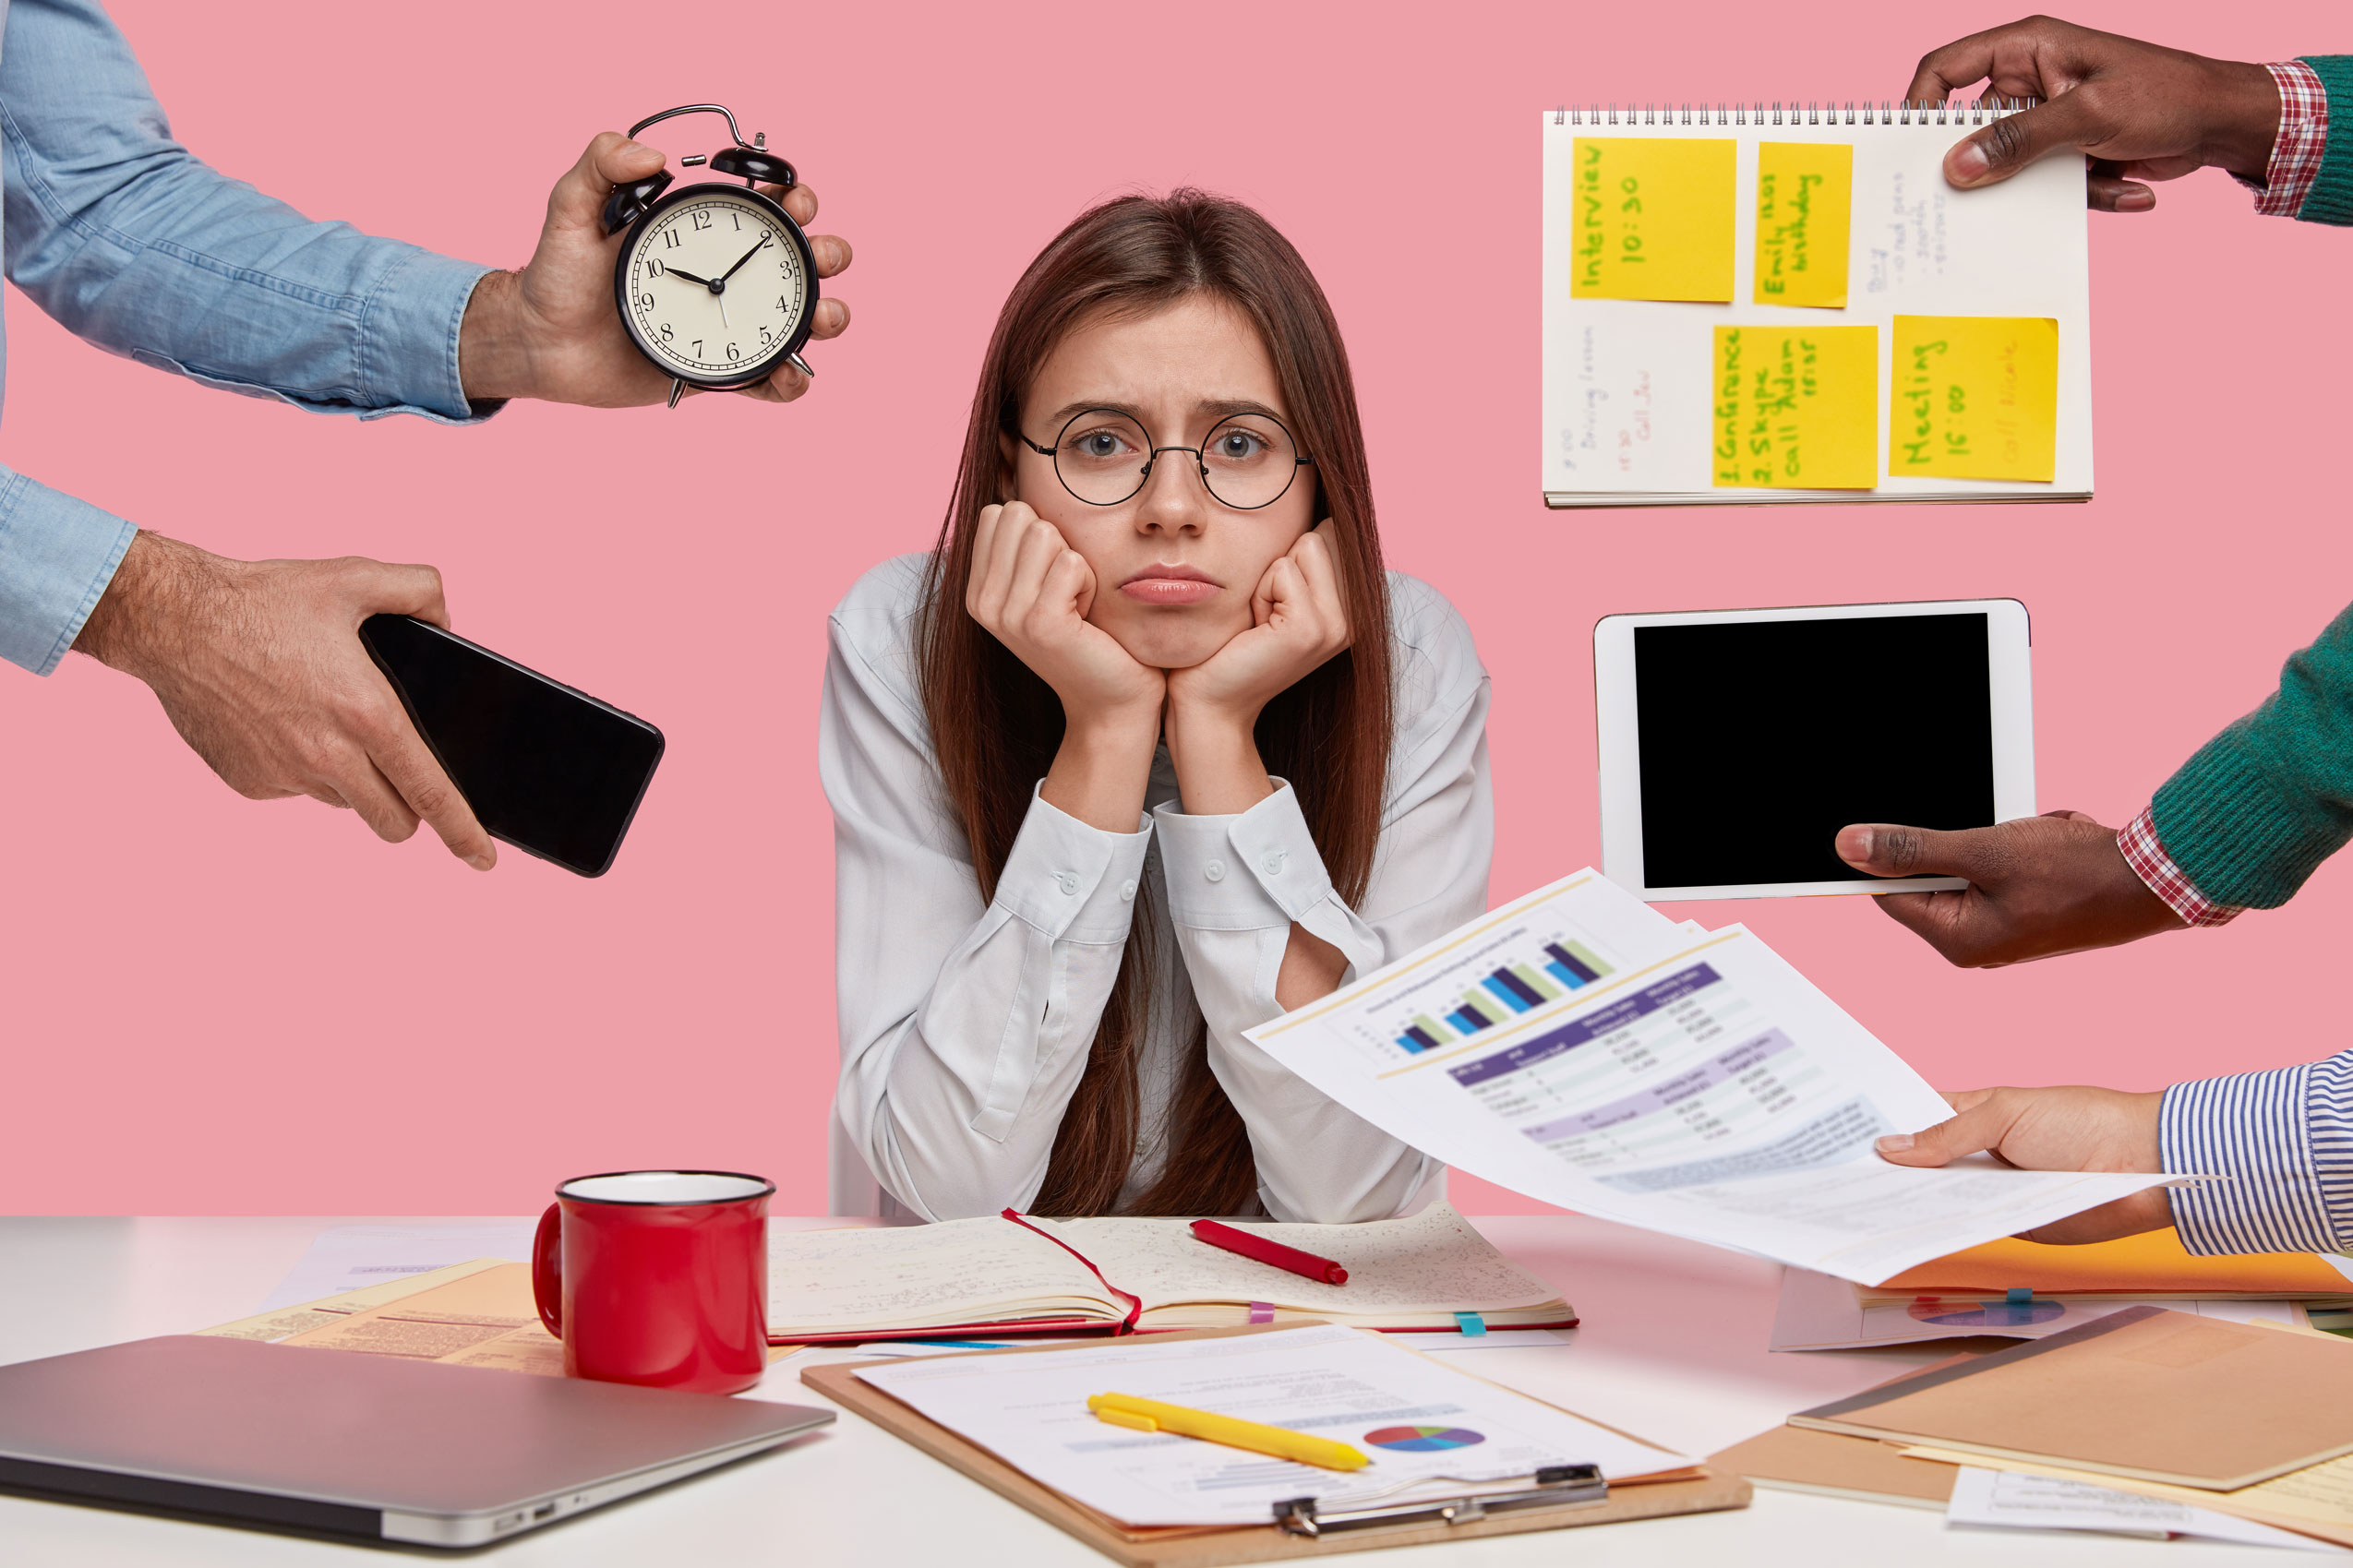 stressed woman office worker a lot of things to do